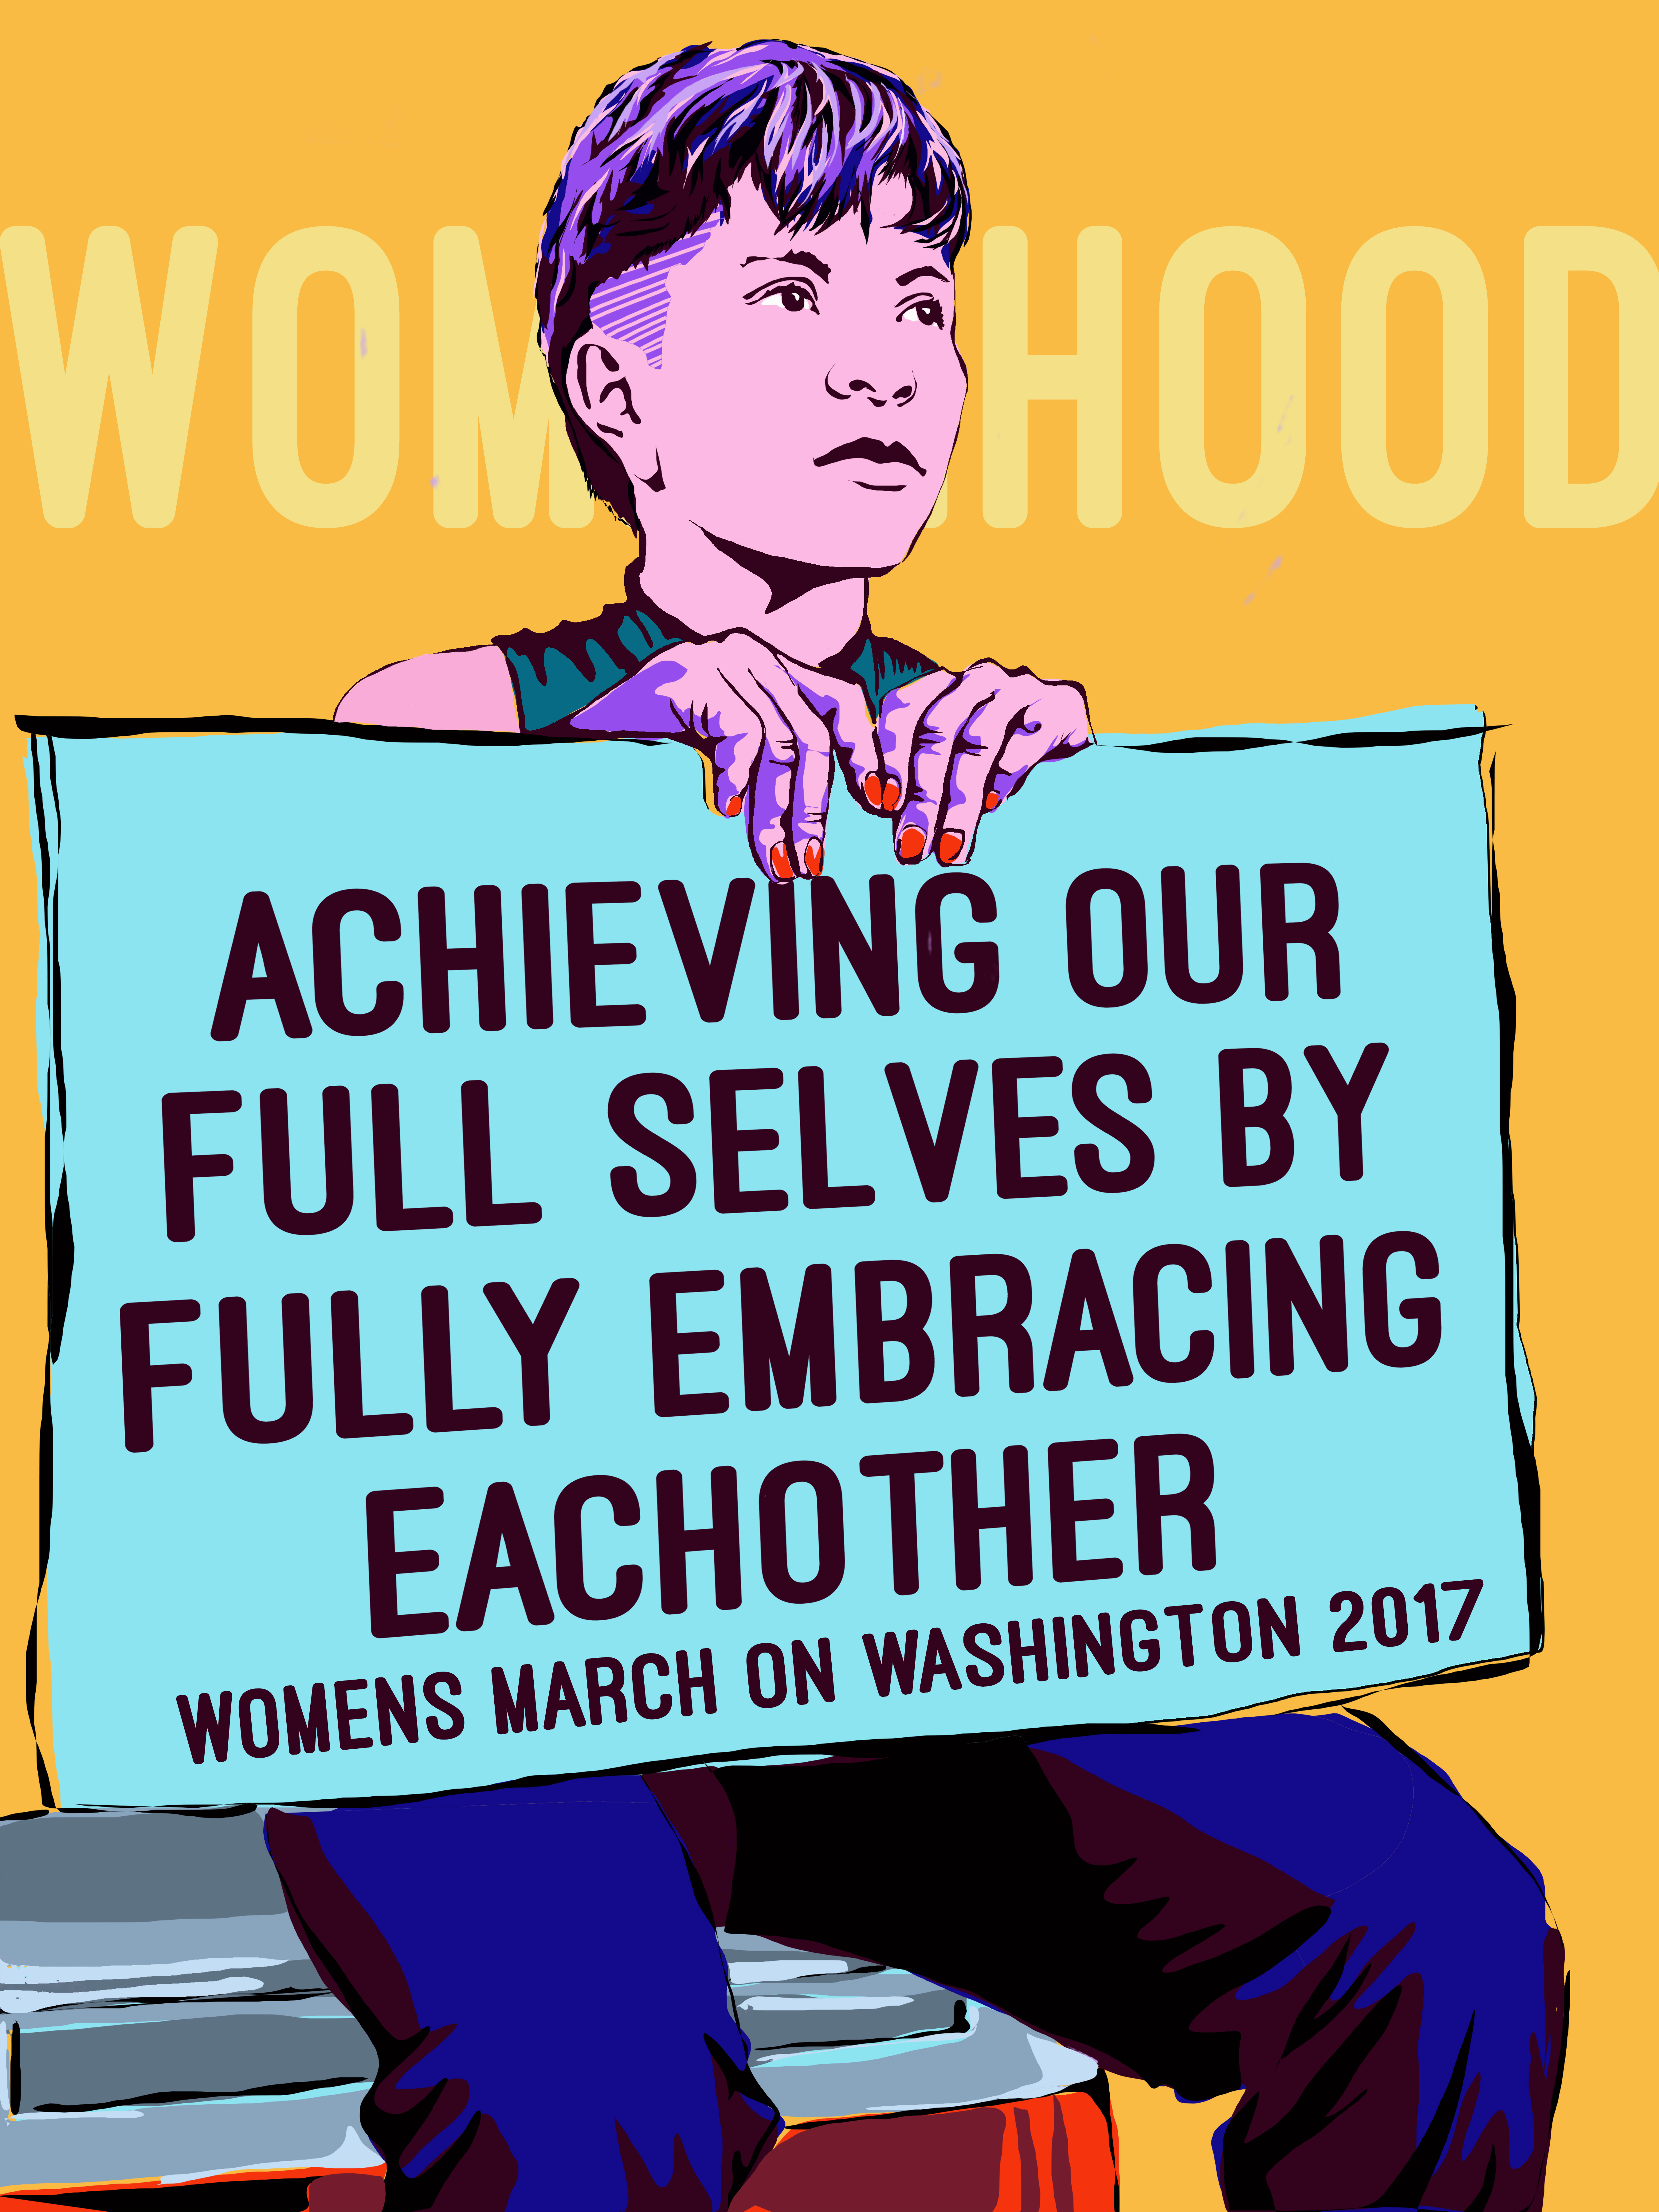 The Women's March on Washington #WhyIMarch